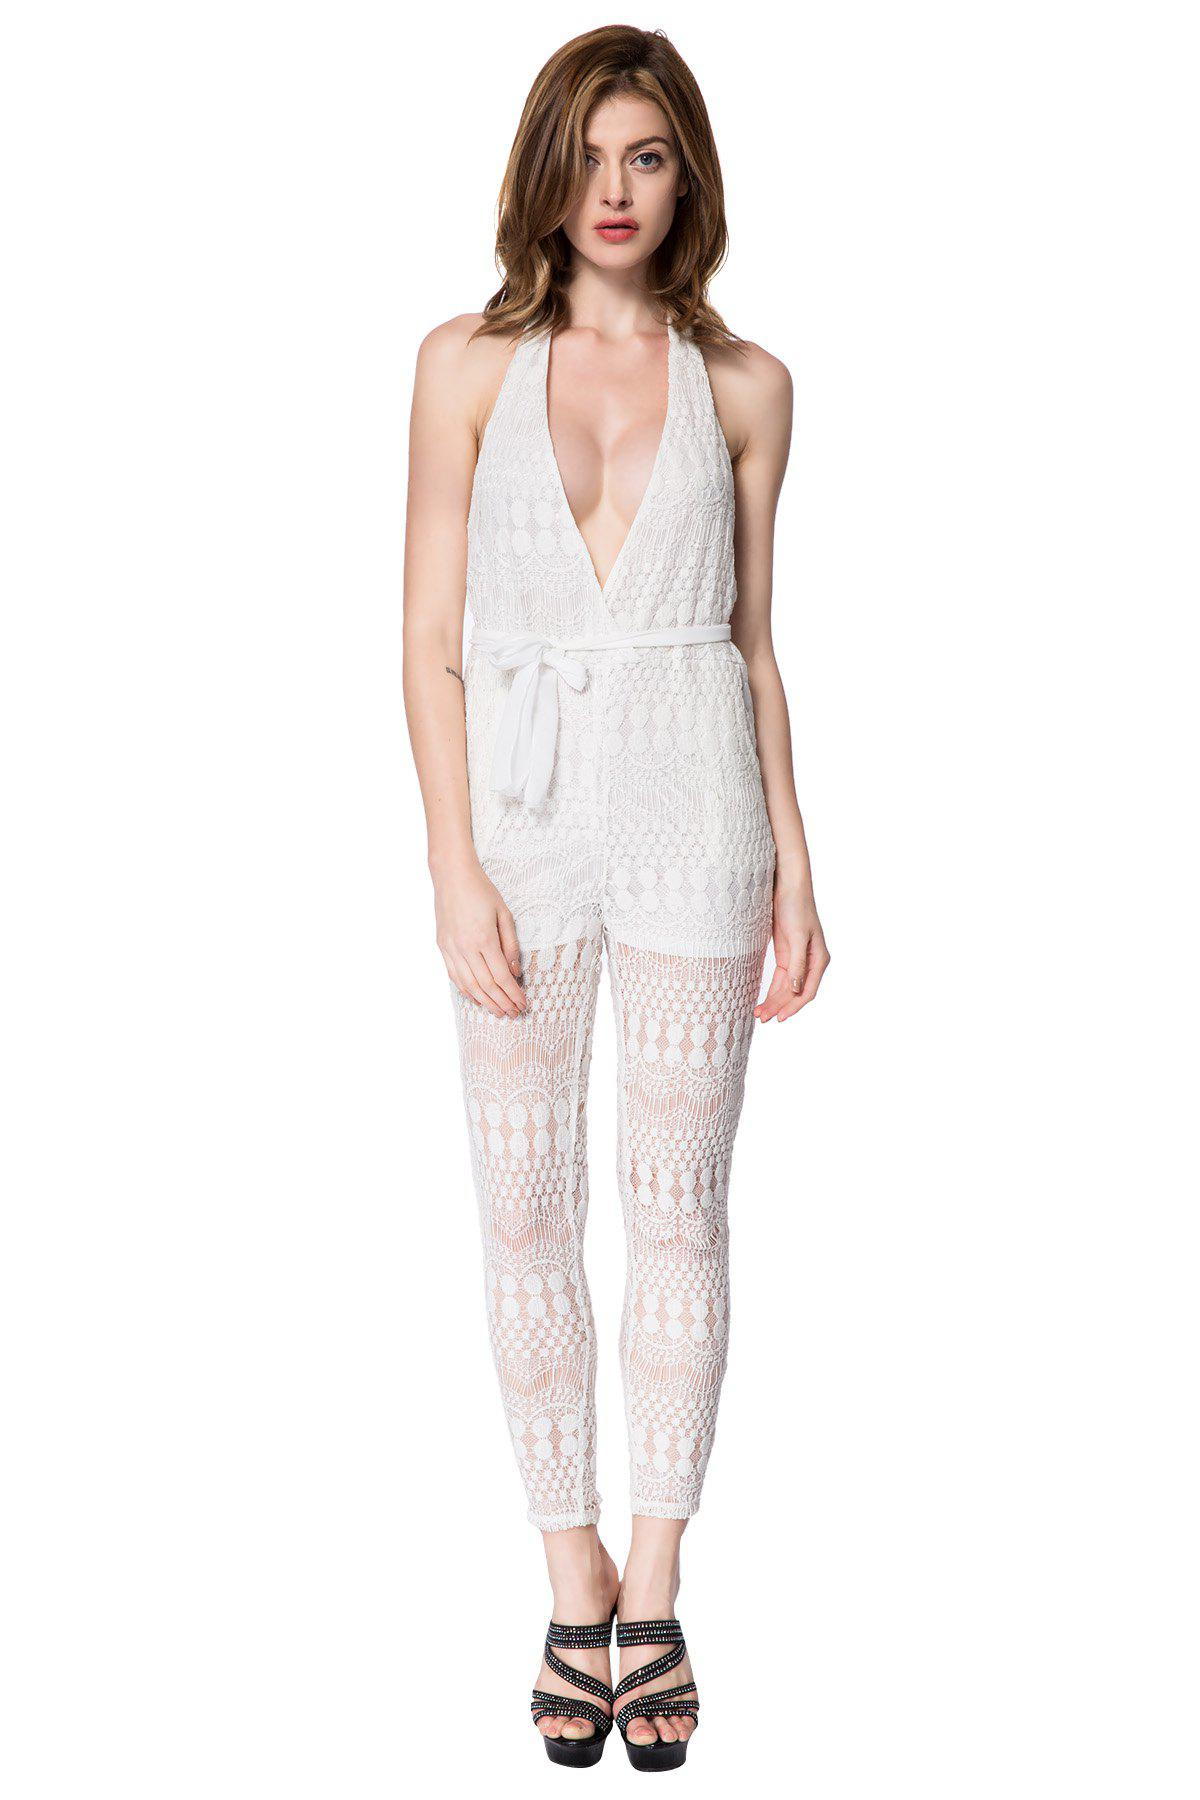 Sexy Halter Sleeveless Backless Solid Color Women's Jumpsuit - WHITE S